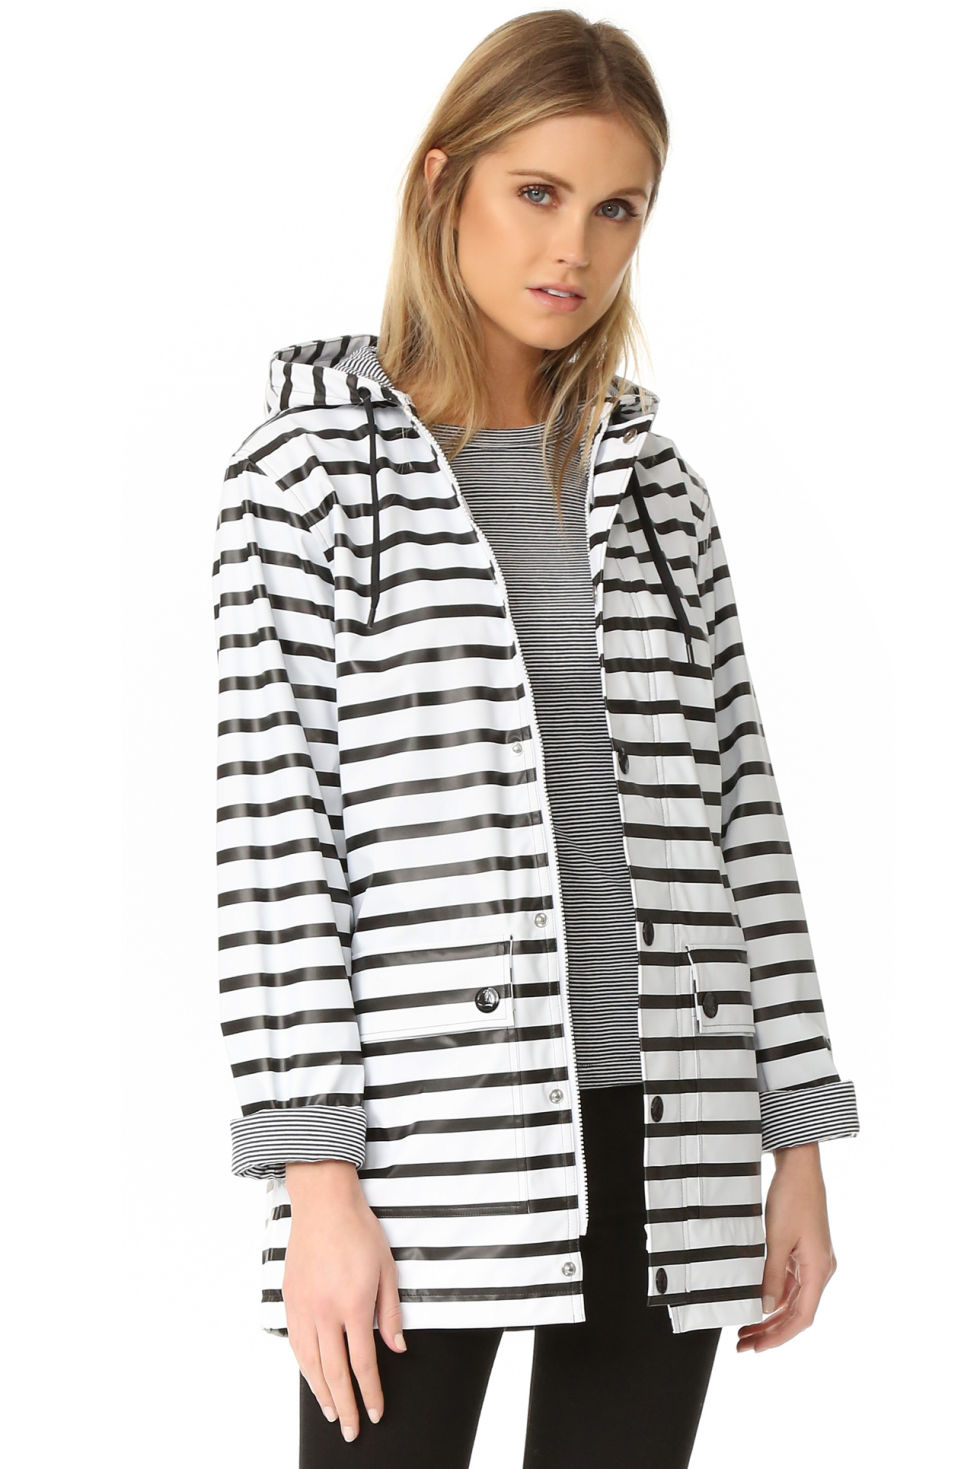 Find great deals on eBay for cute rain coats. Shop with confidence.